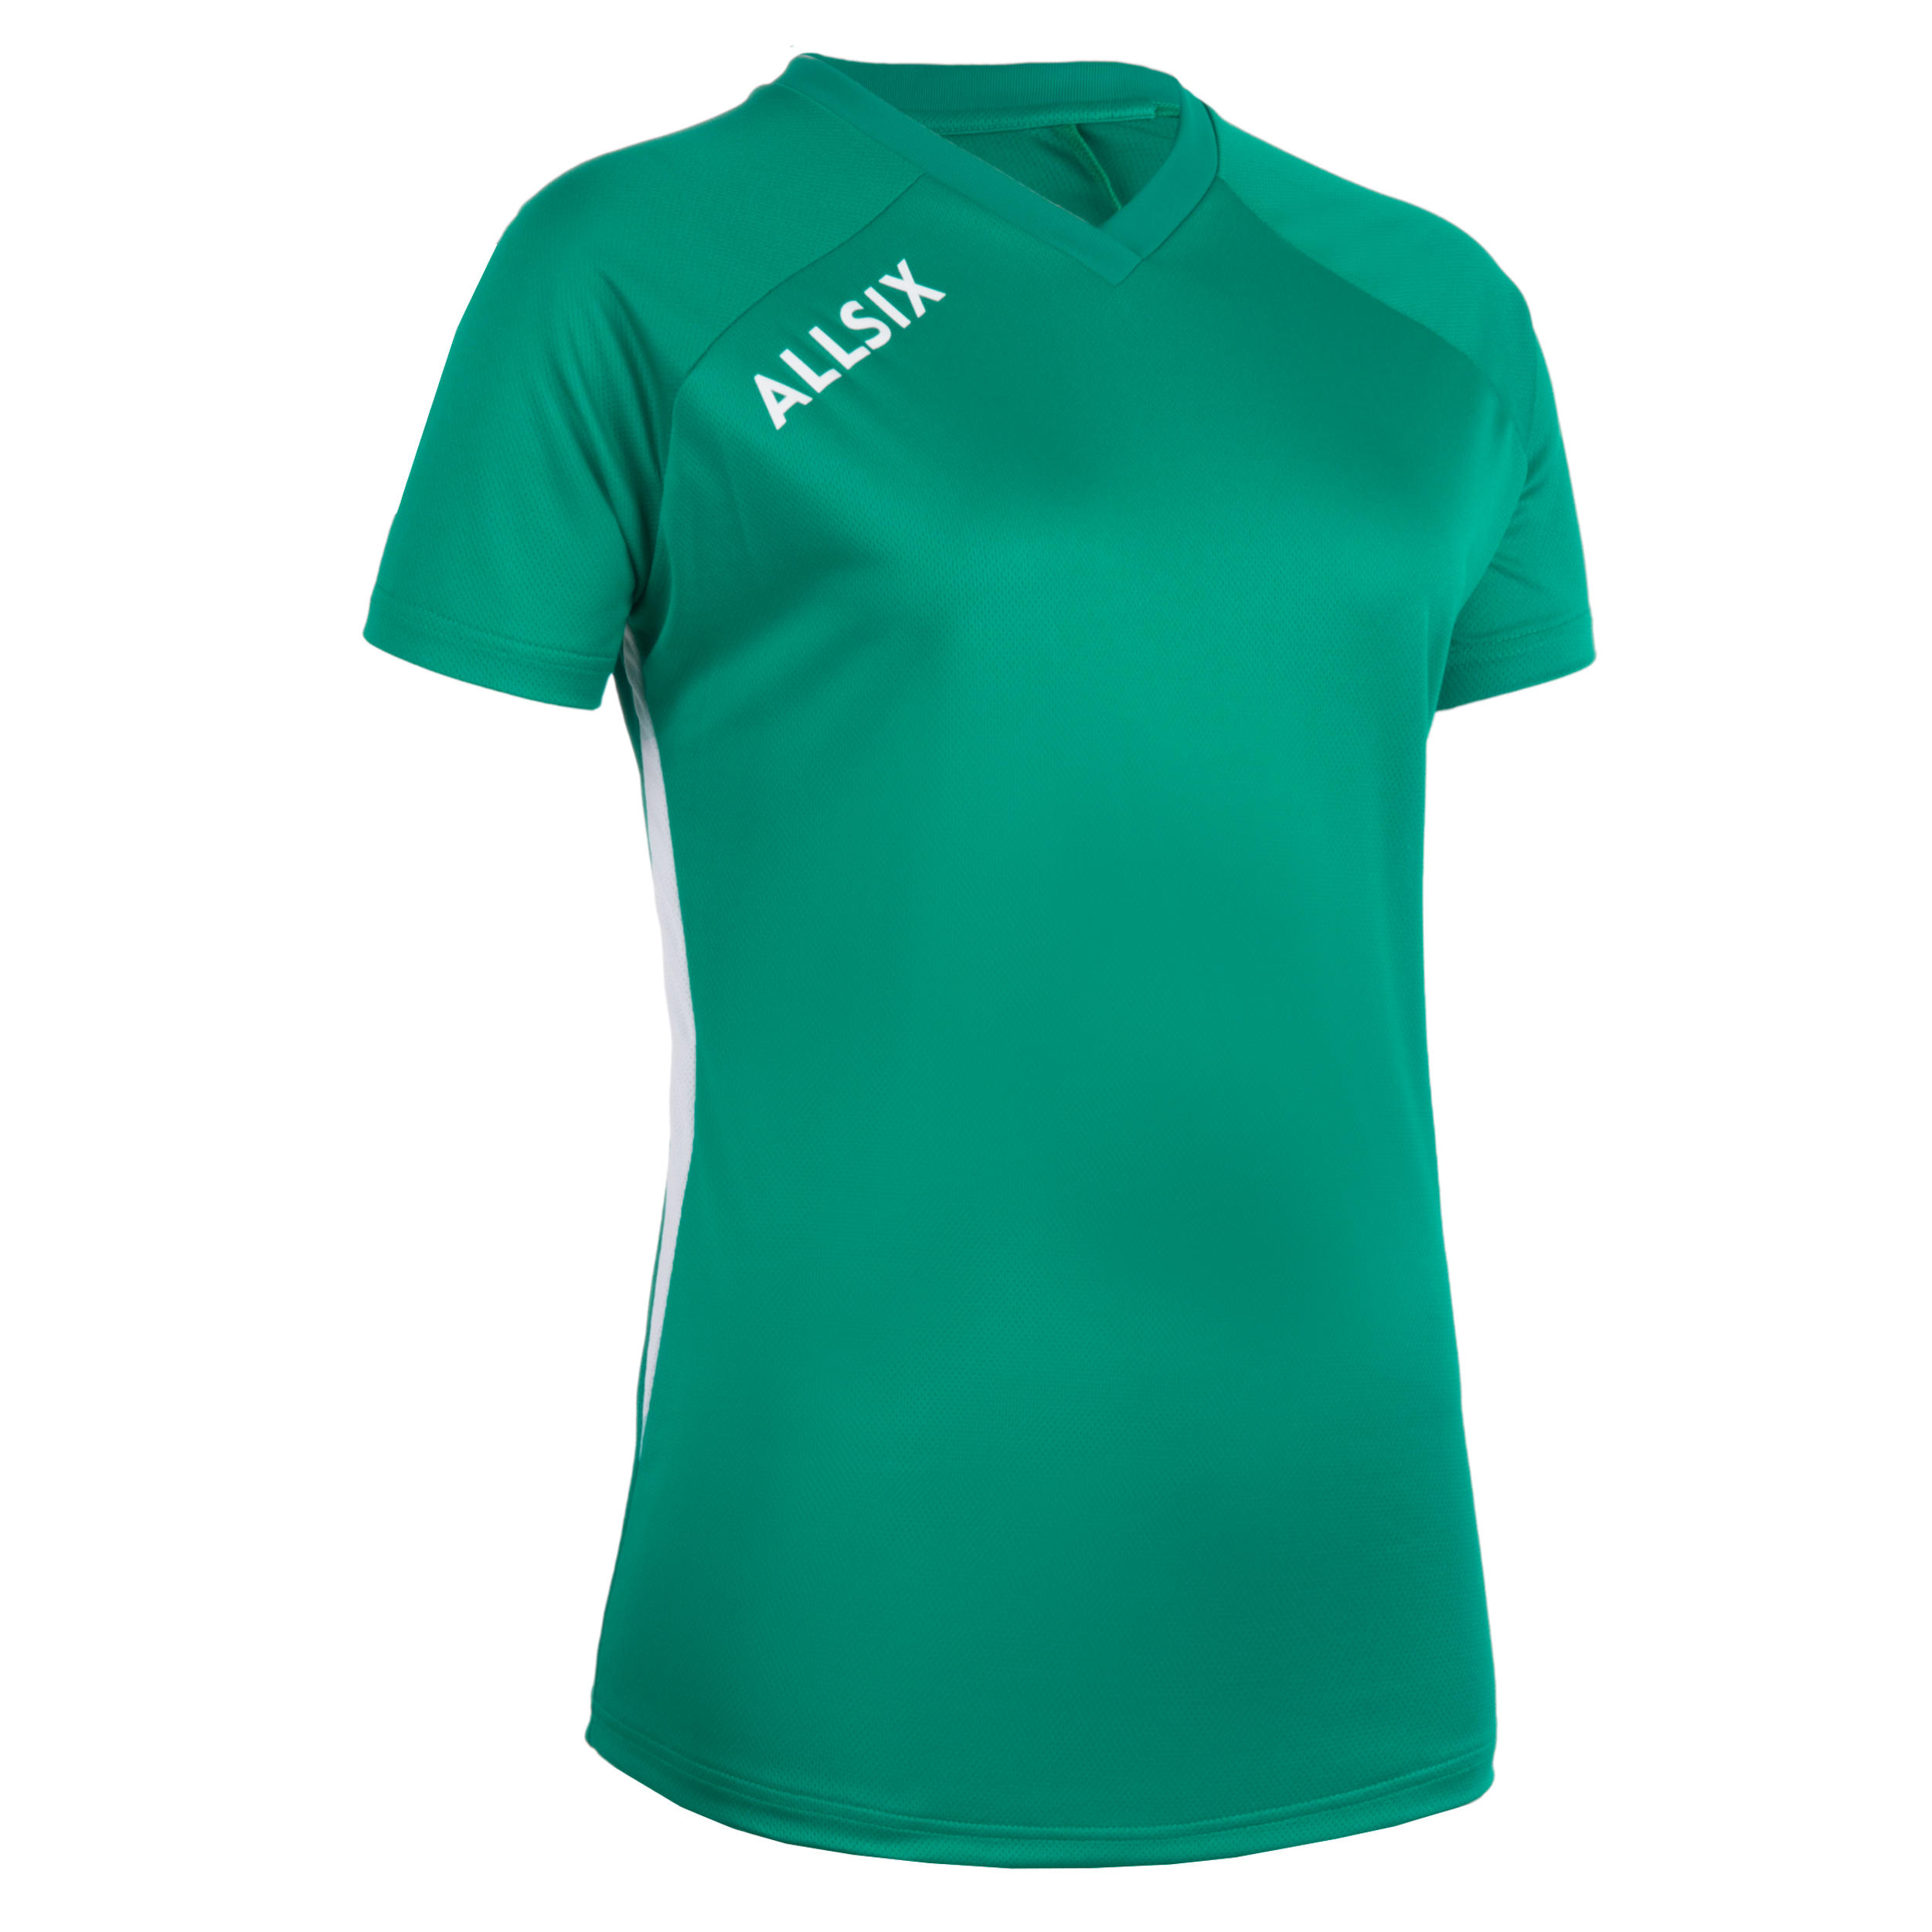 Tricou volei V100 Verde Damă imagine